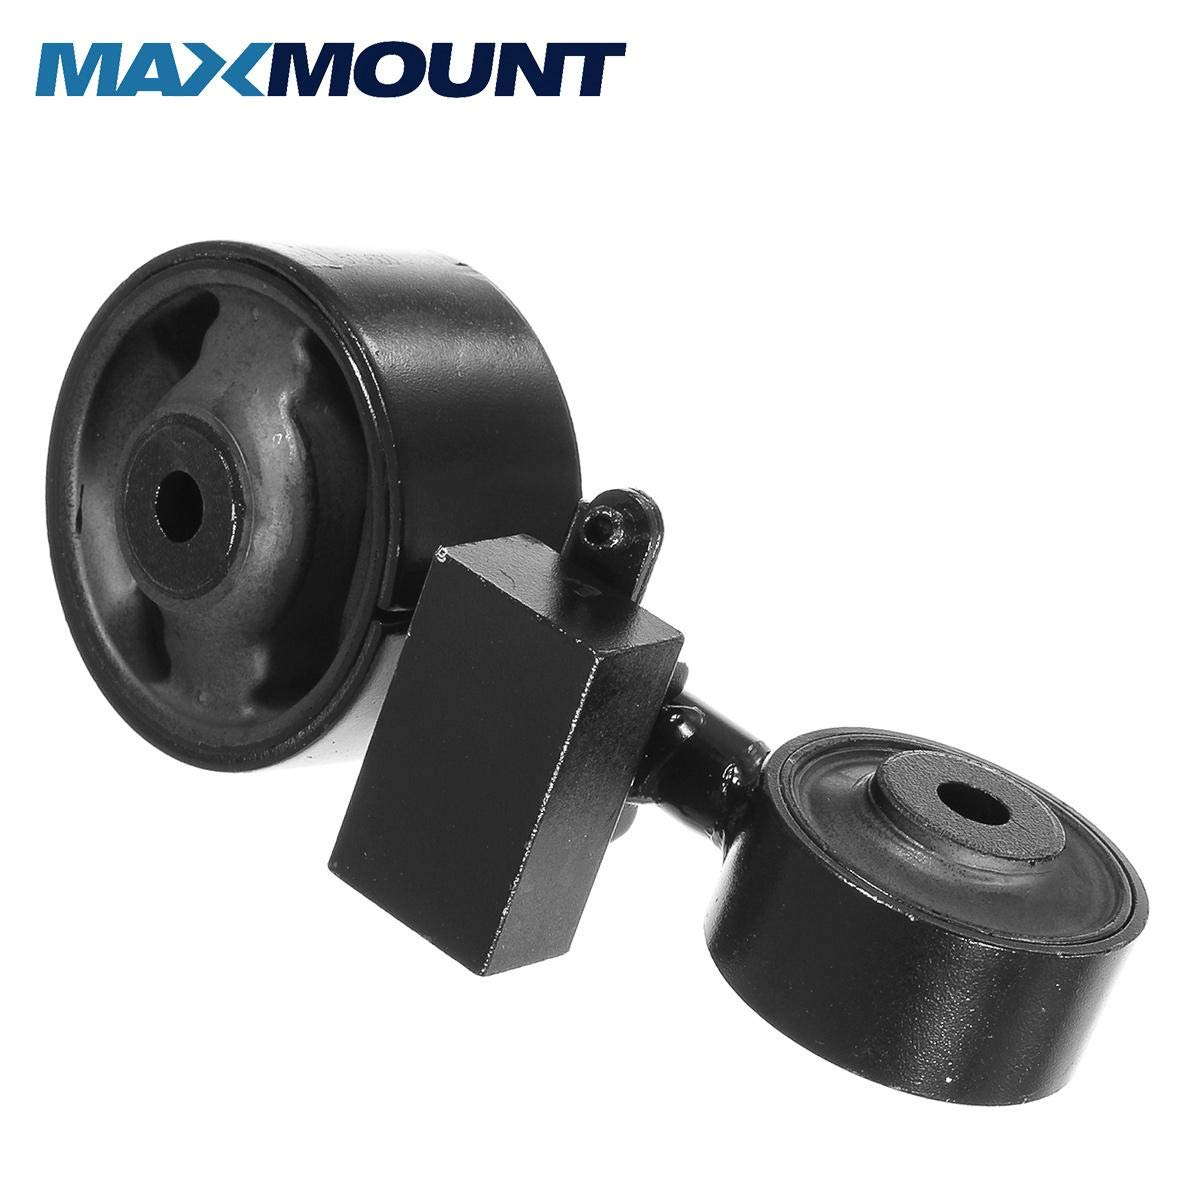 MAXMOUNT A4274 Front Torque Strut Mount Replacement For Toyota Camry 2.4L 2007-2009// Toyota Camry 2.4L L4 ELECTRIC//GAS 2007-2011